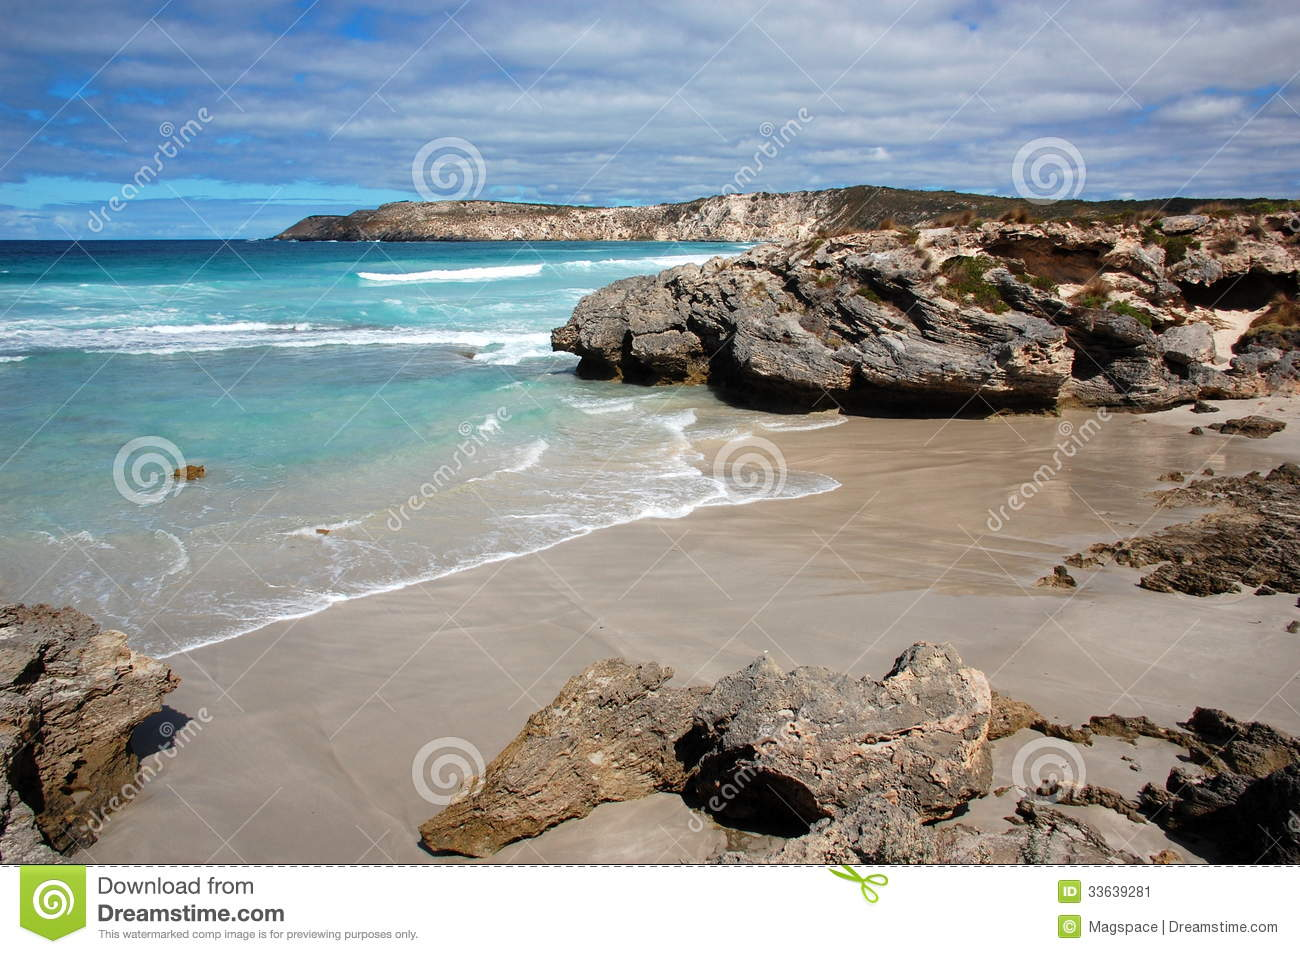 Pennington Bay, Kangaroo Island, South Australia. Stock Images.